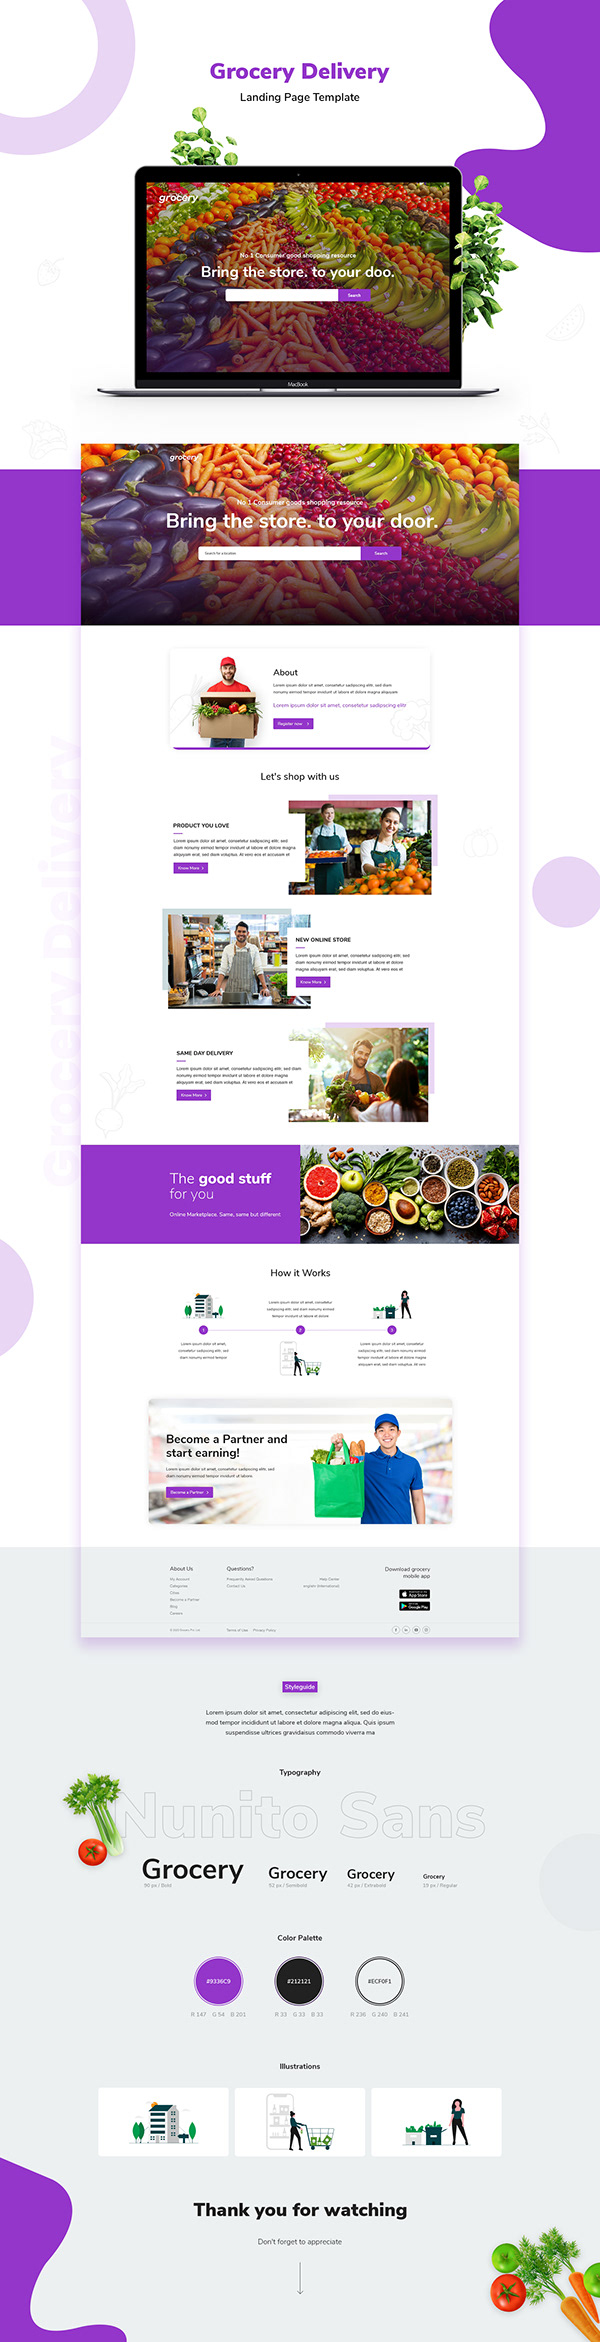 Landing Page of Grocery Delivery